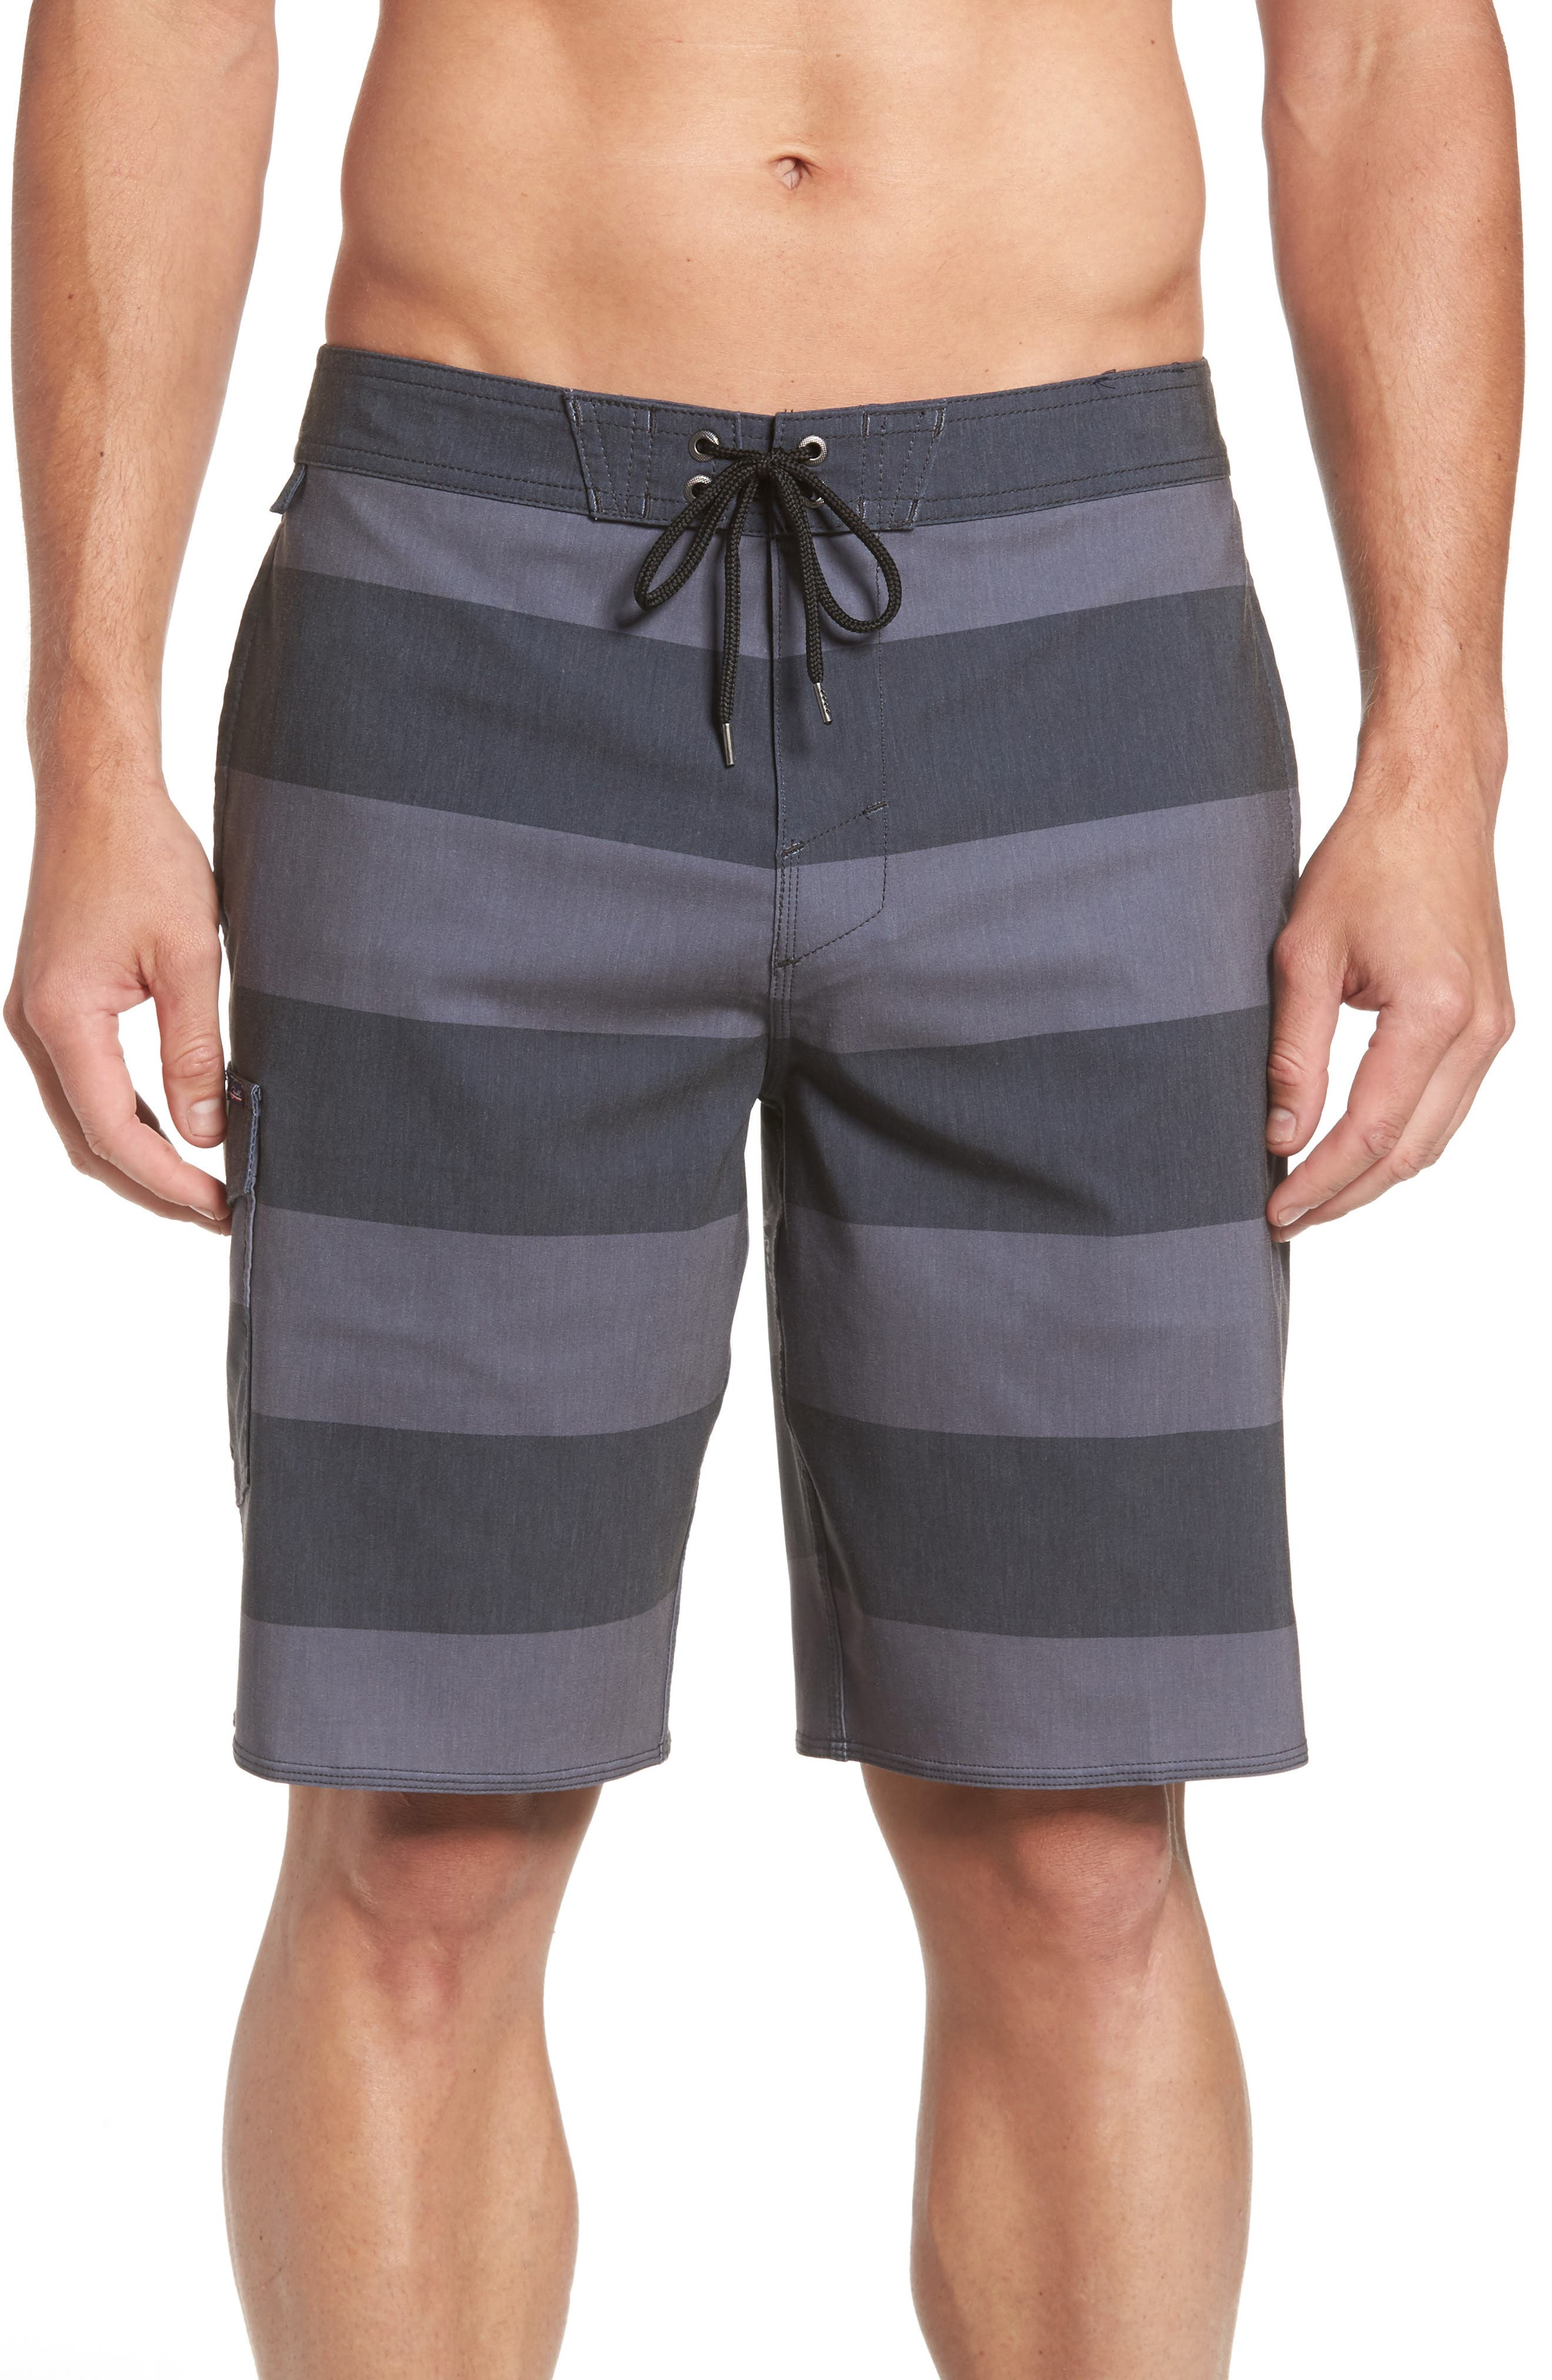 Alternate Image 1 Selected - Jack O'Neill Homage Board Shorts